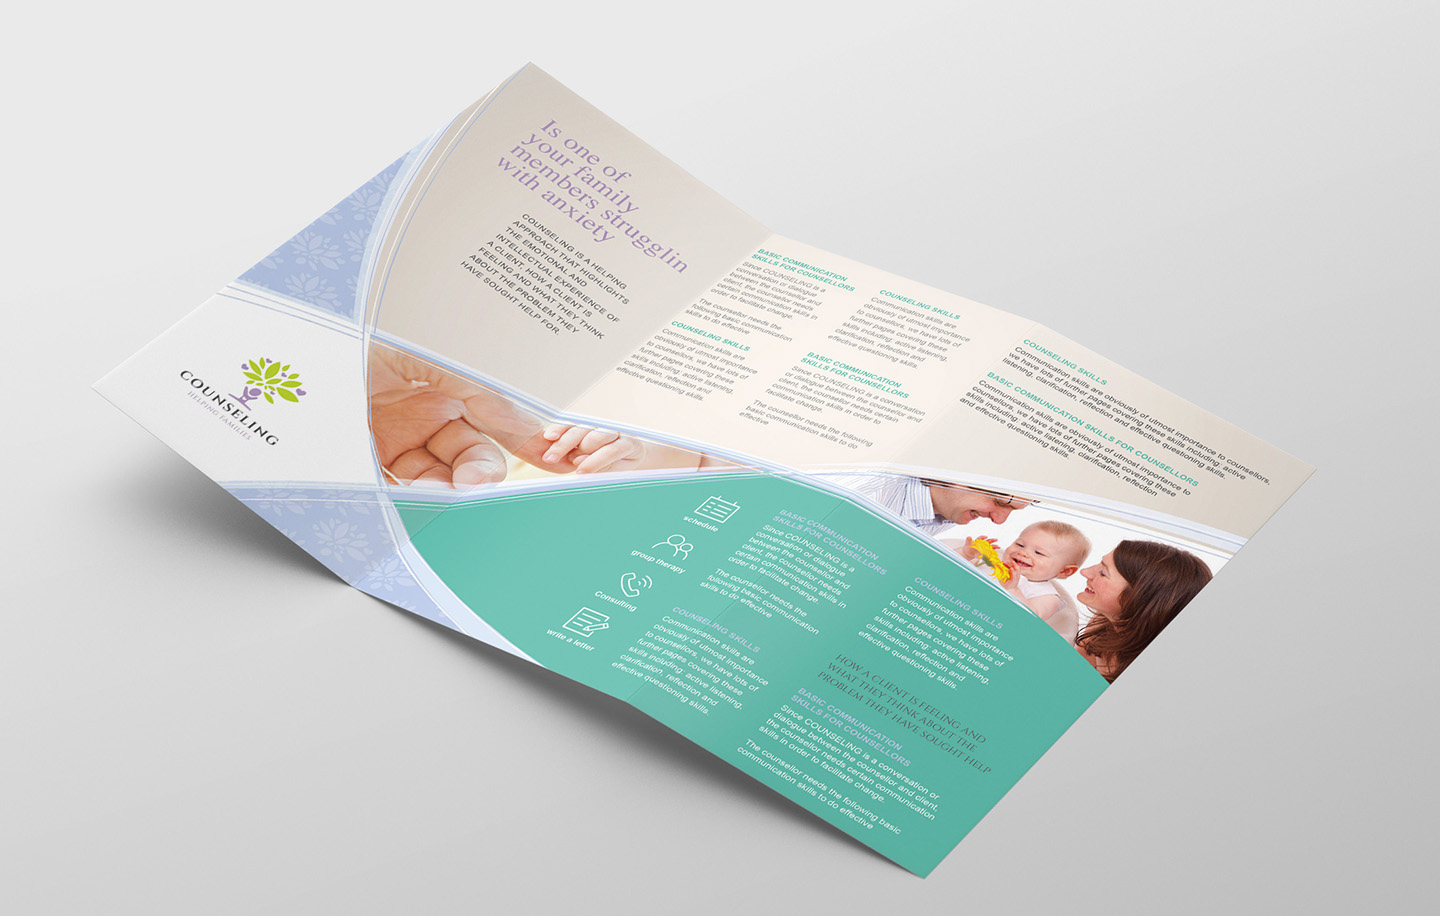 Counselling Service Tri-Fold Brochure Template example image 2